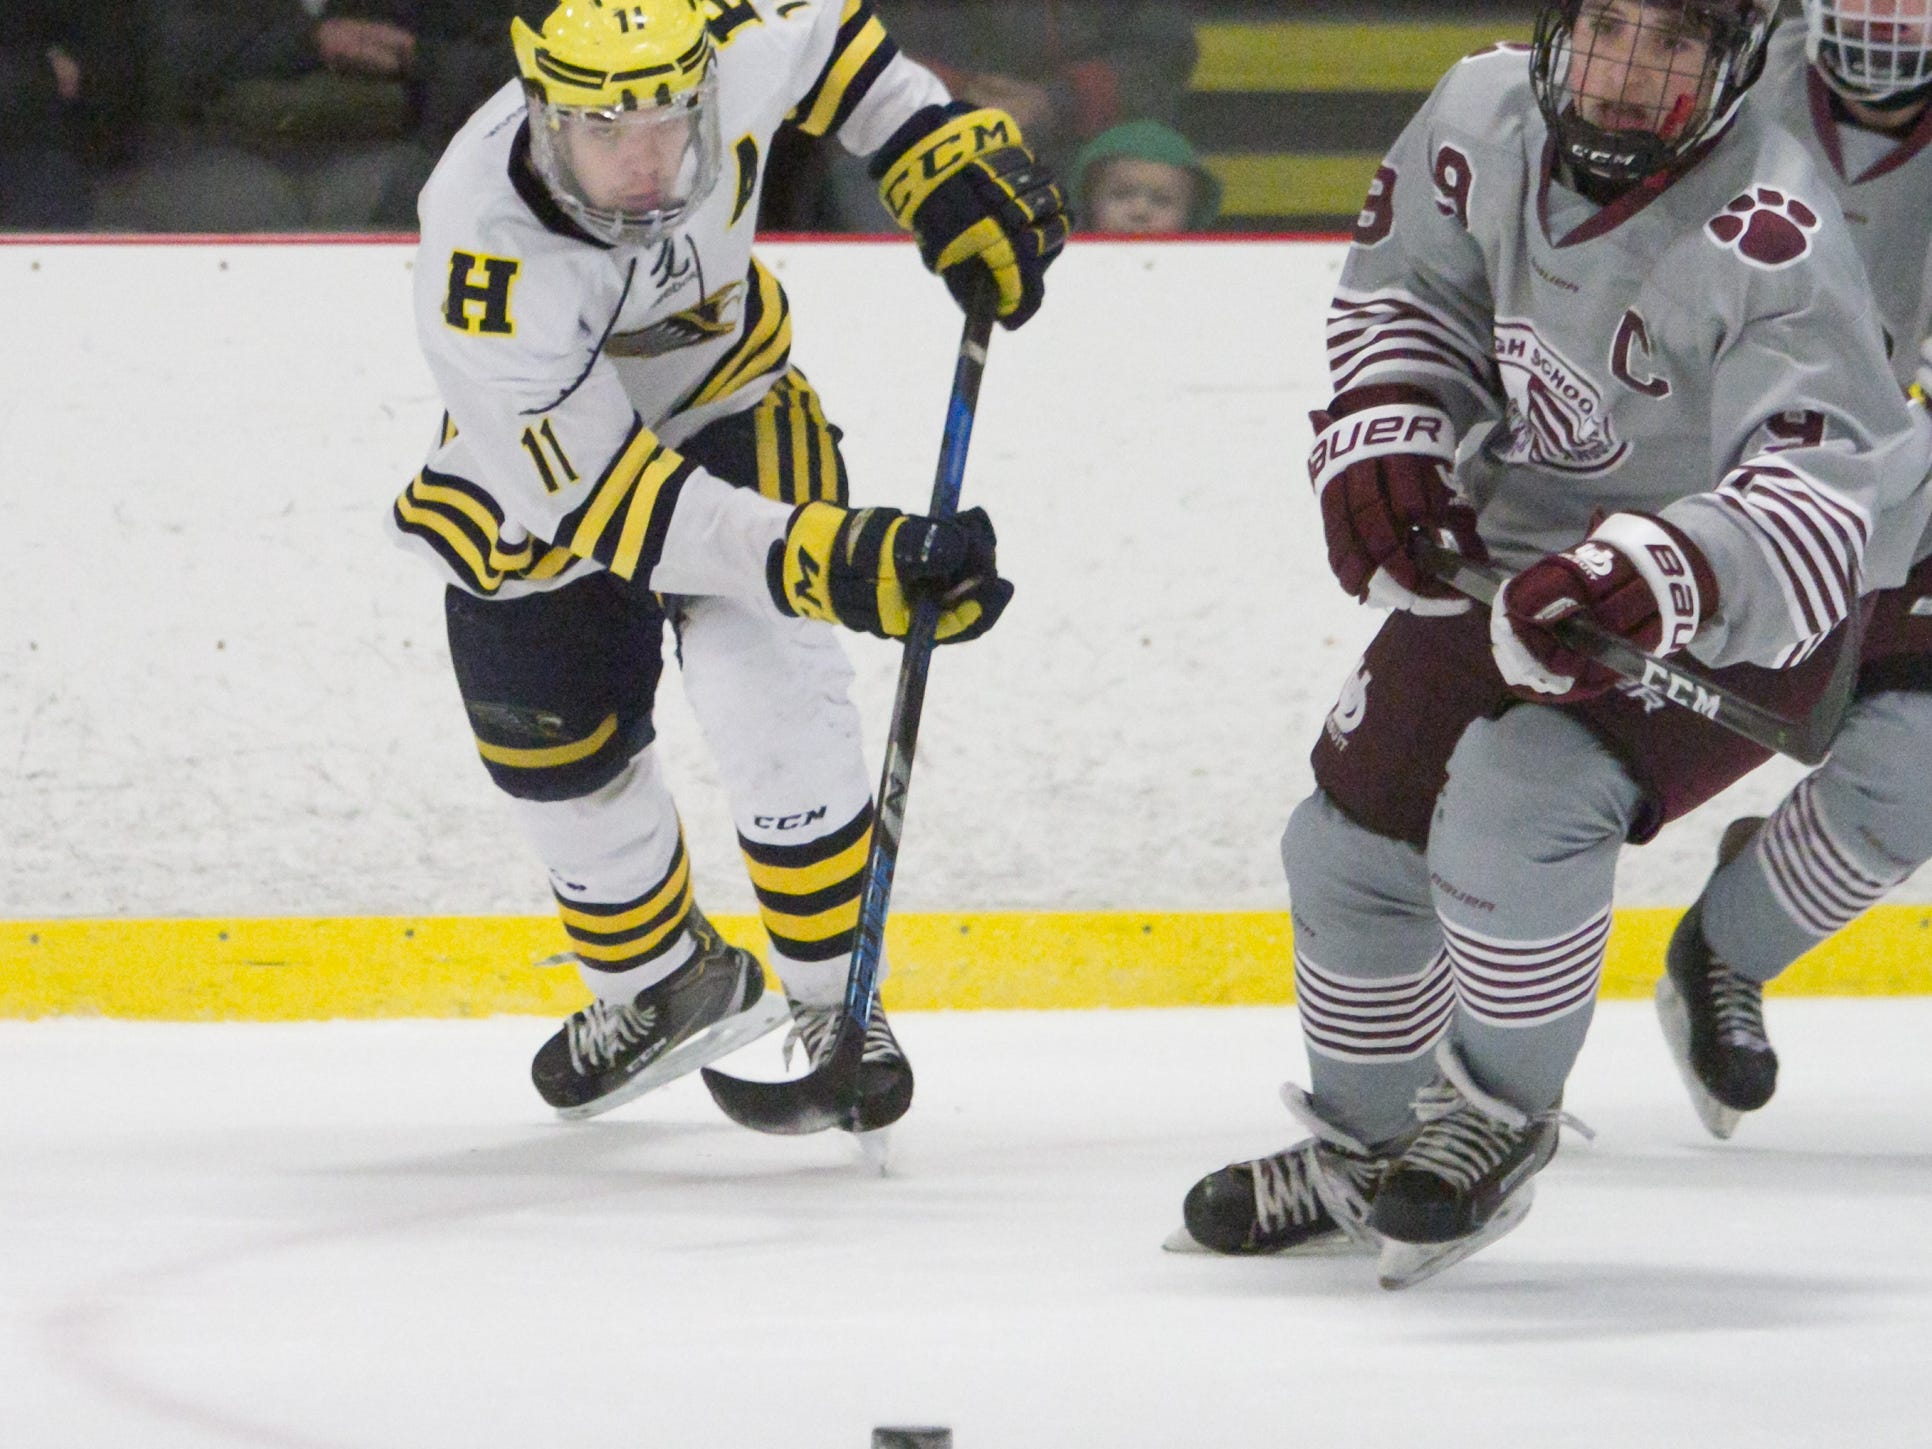 Hartland's Gabe Anderson (11), who scored the winning goal, races Detroit U of D Jesuit's Ben Charboneau for the puck on Friday, Jan. 11, 2019.